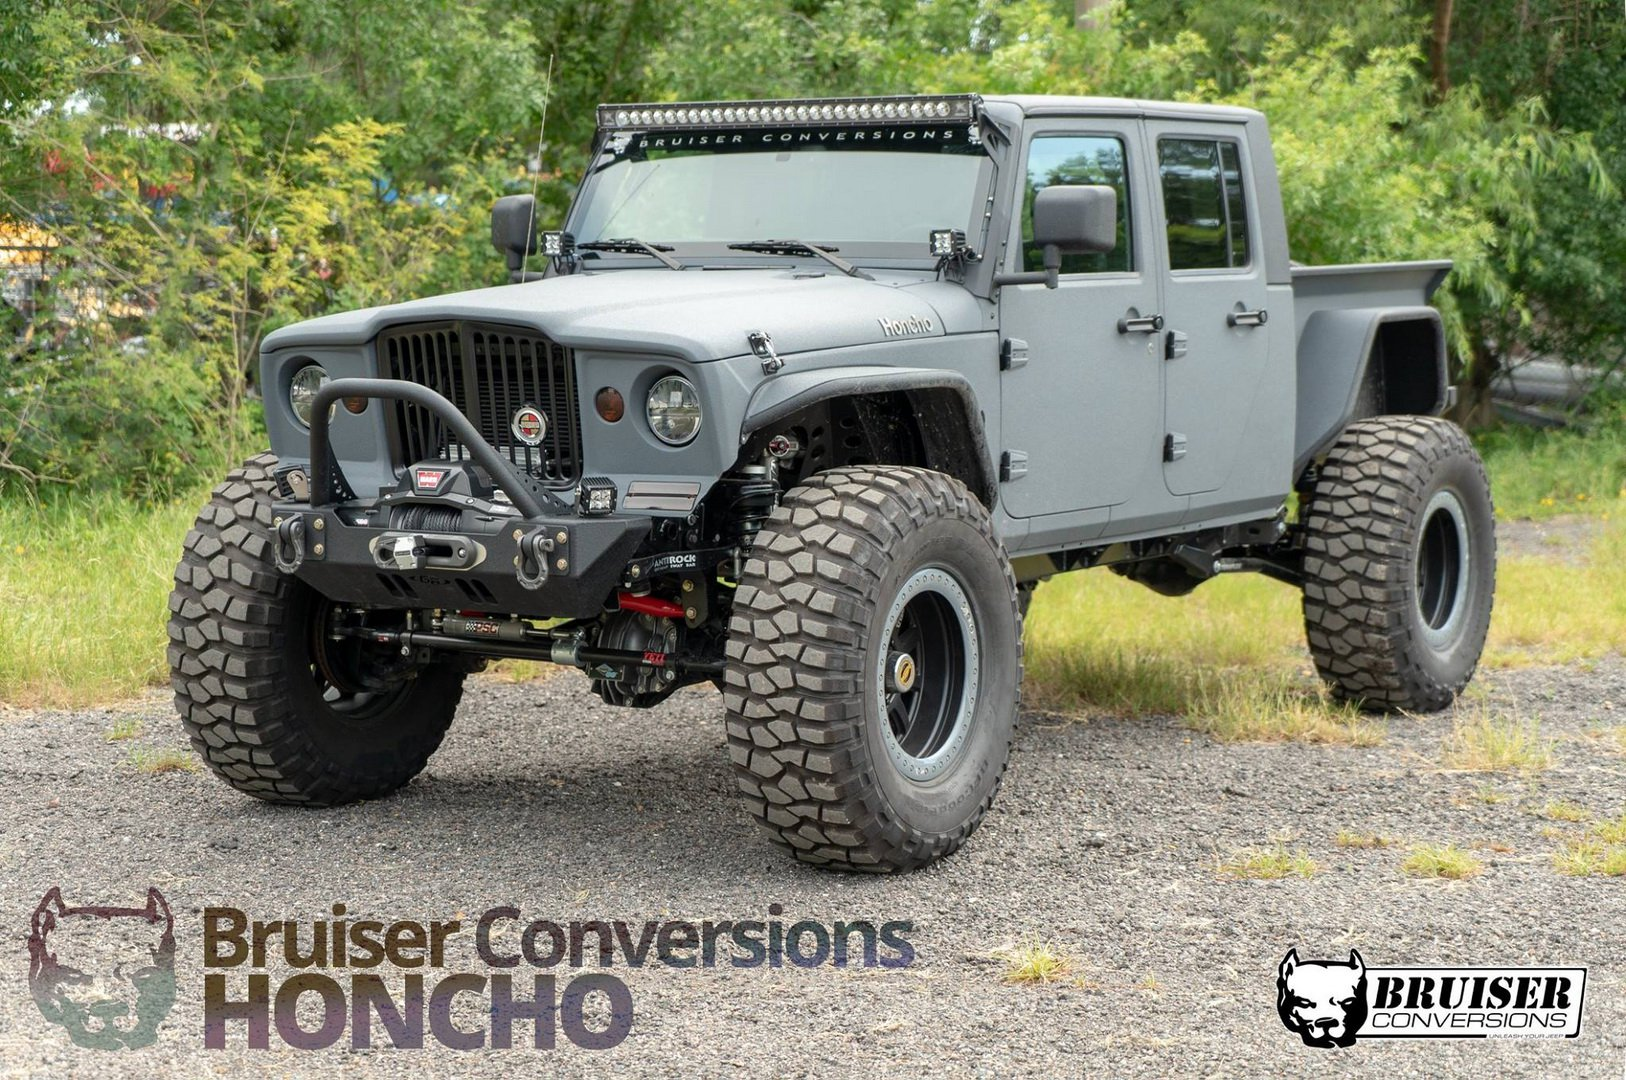 Jeep Bruiser Honcho mixes old-school cool with modern power